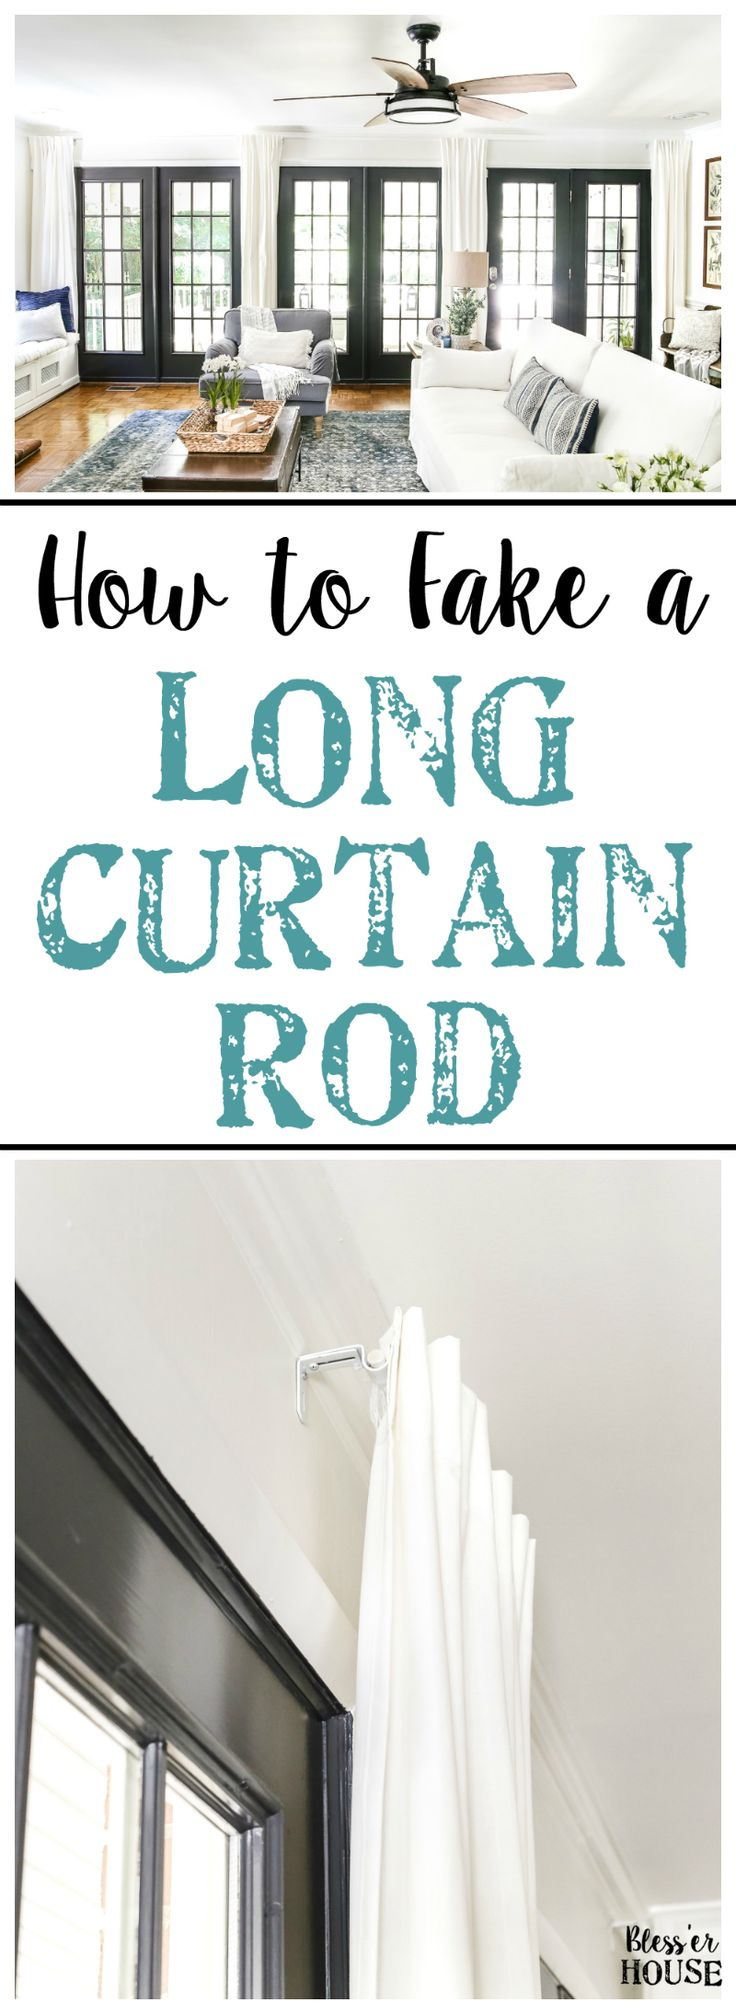 How to Fake a Long Curtain Rod   blesserhouse.com - A simple, inexpensive trick to fake the look of a long curtain rod, plus how to hang curtains to make windows and rooms look bigger.